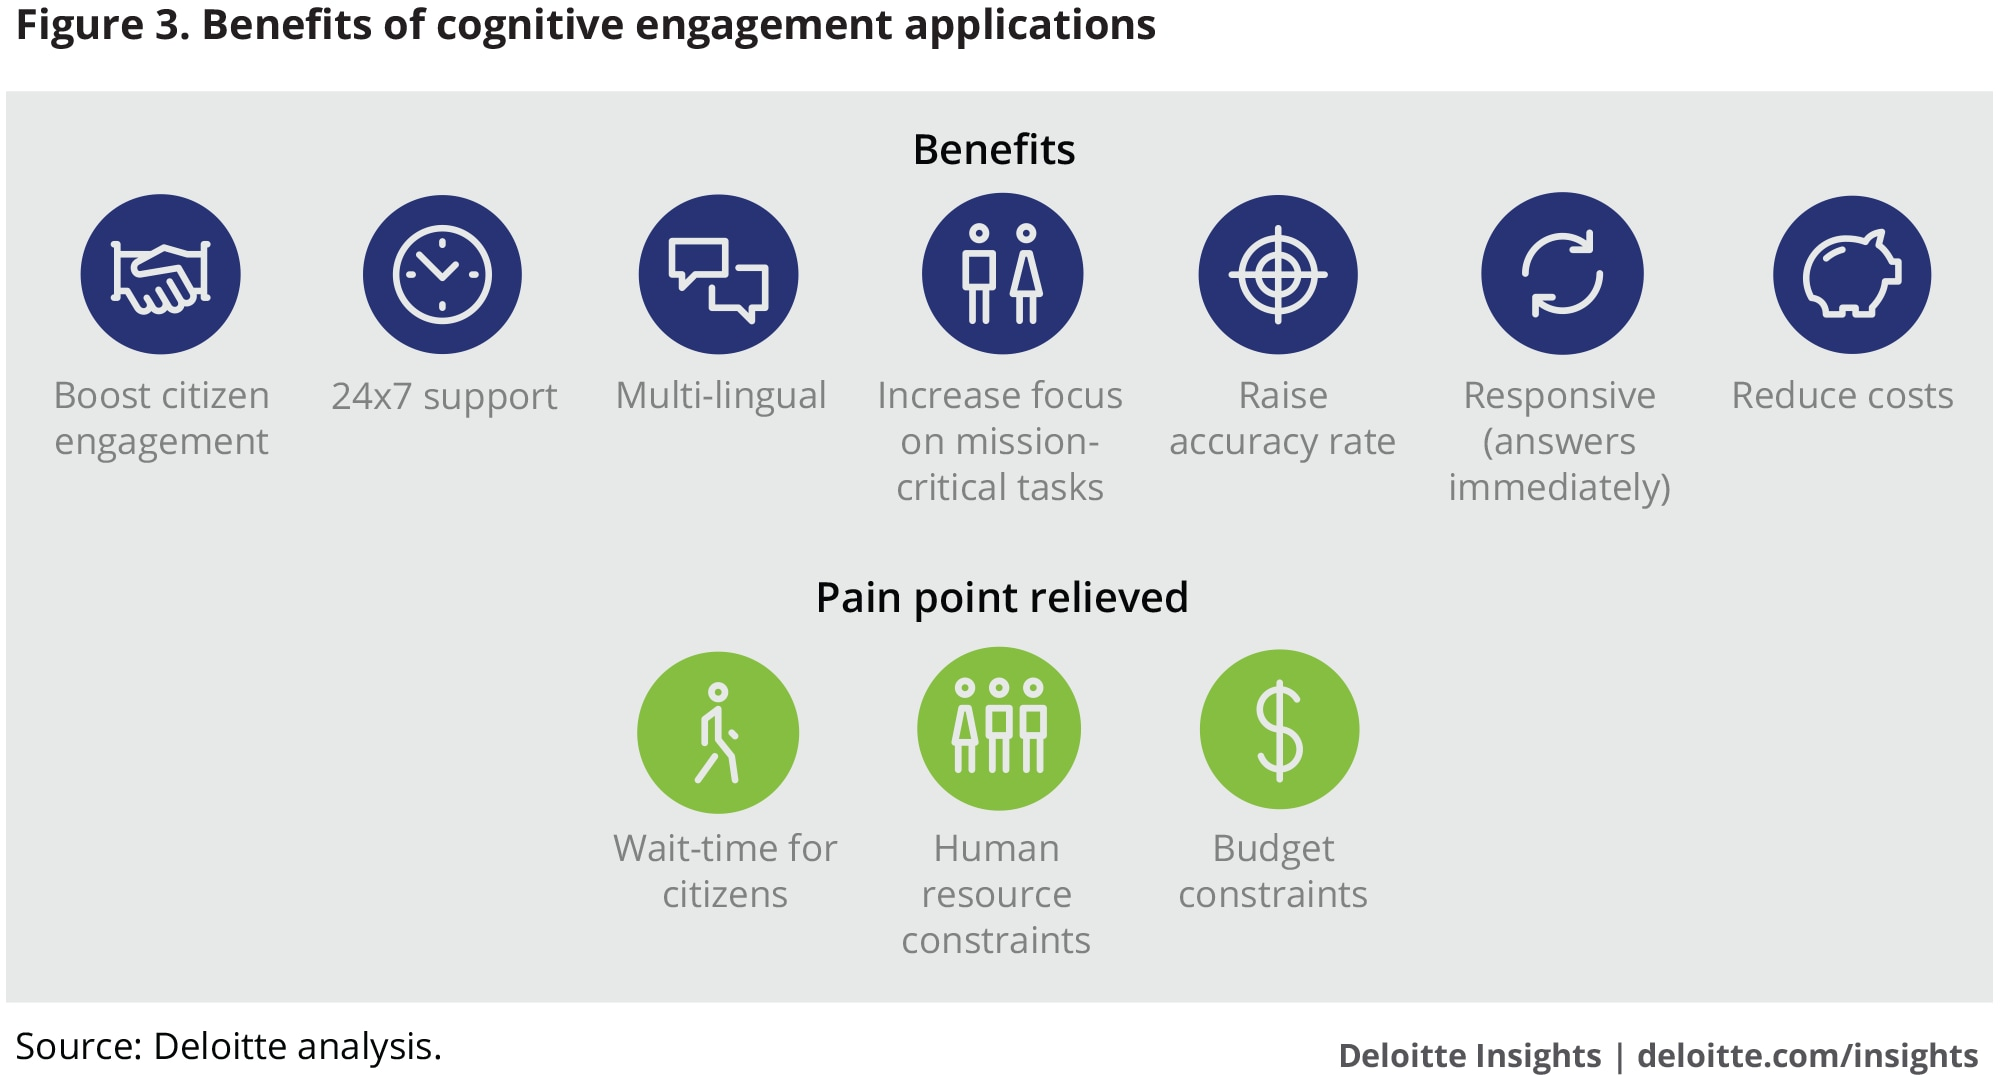 Benefits of cognitive engagement applications